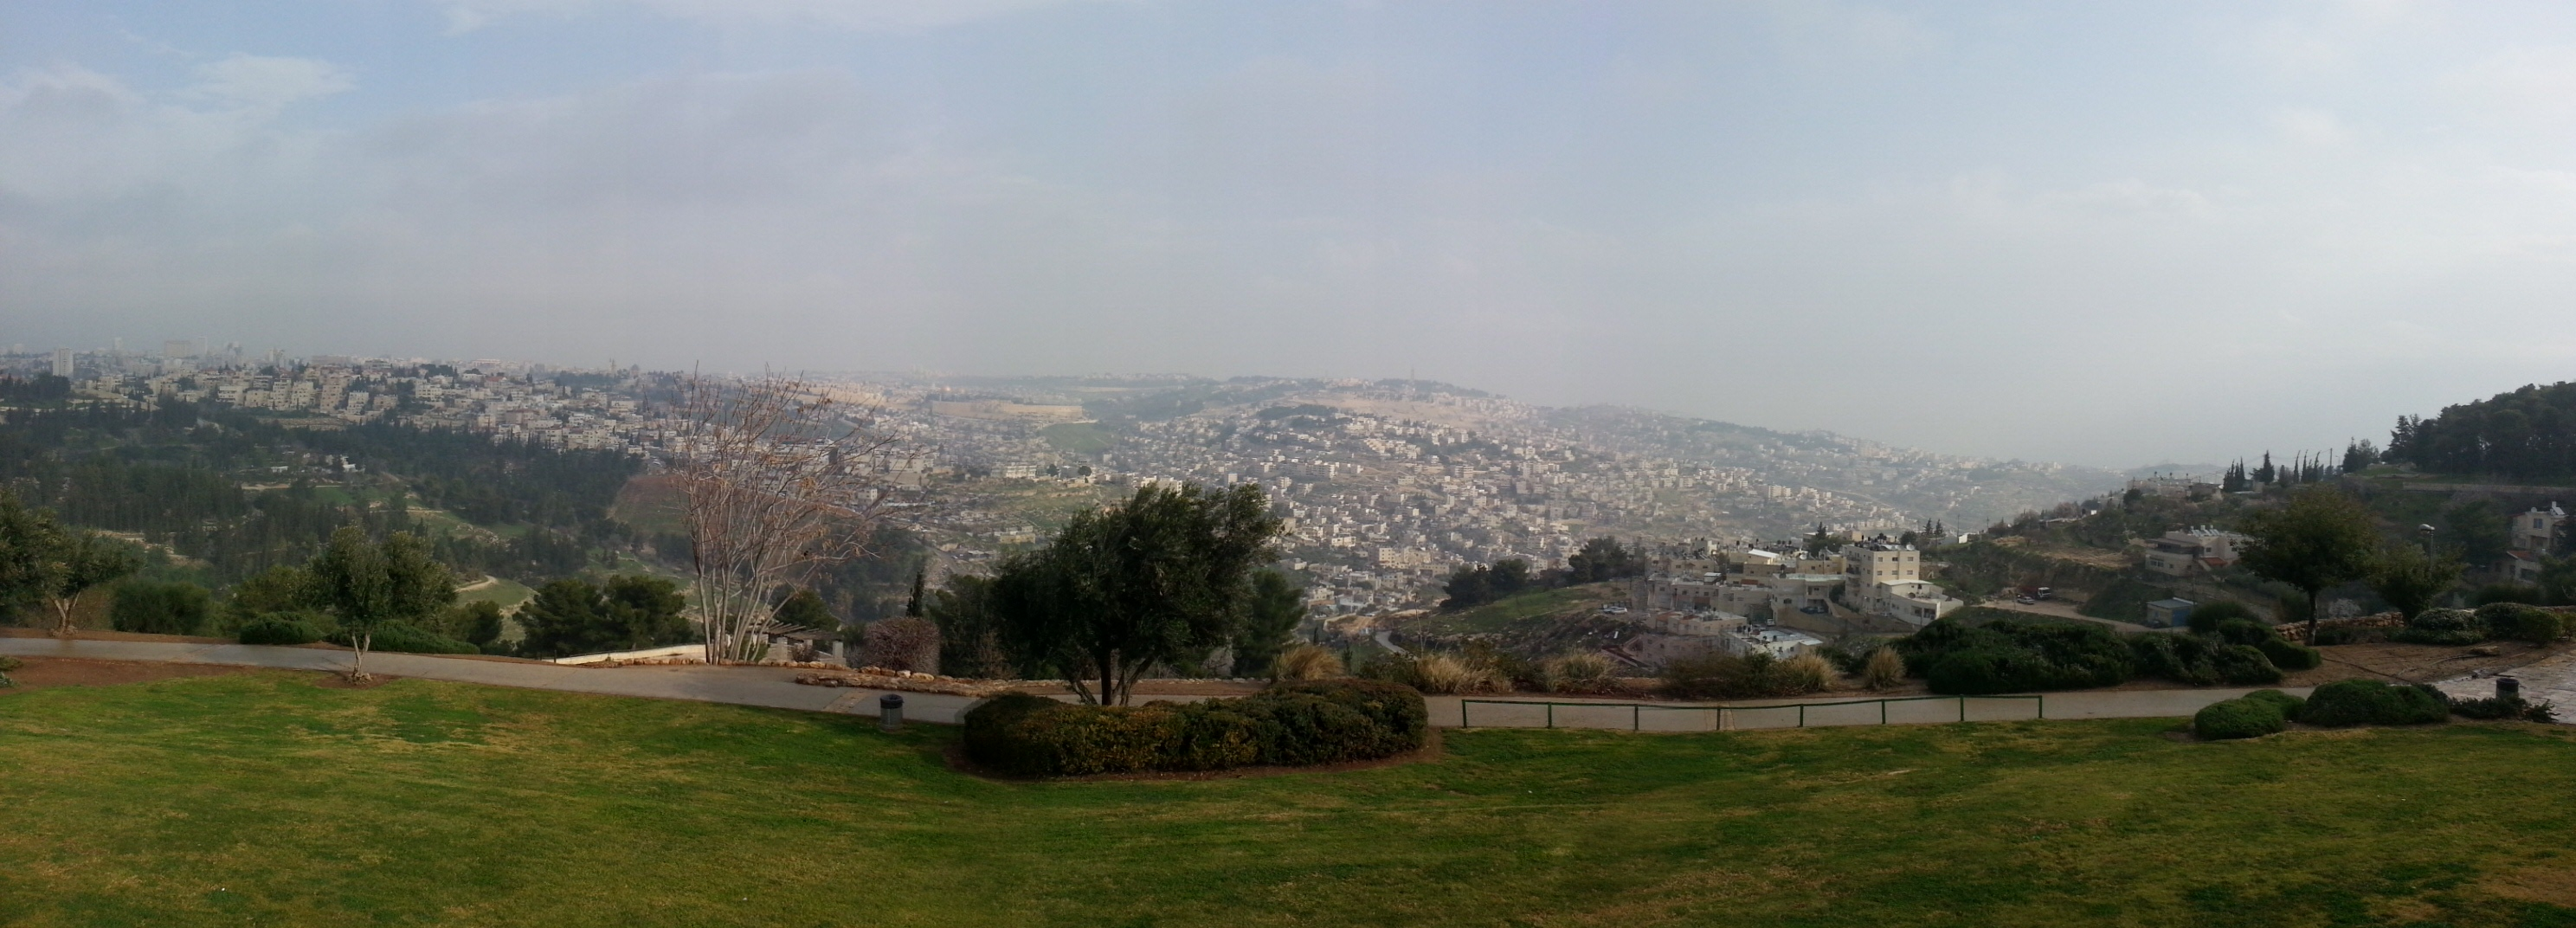 View north over Jerusalem from the Haas Promenade